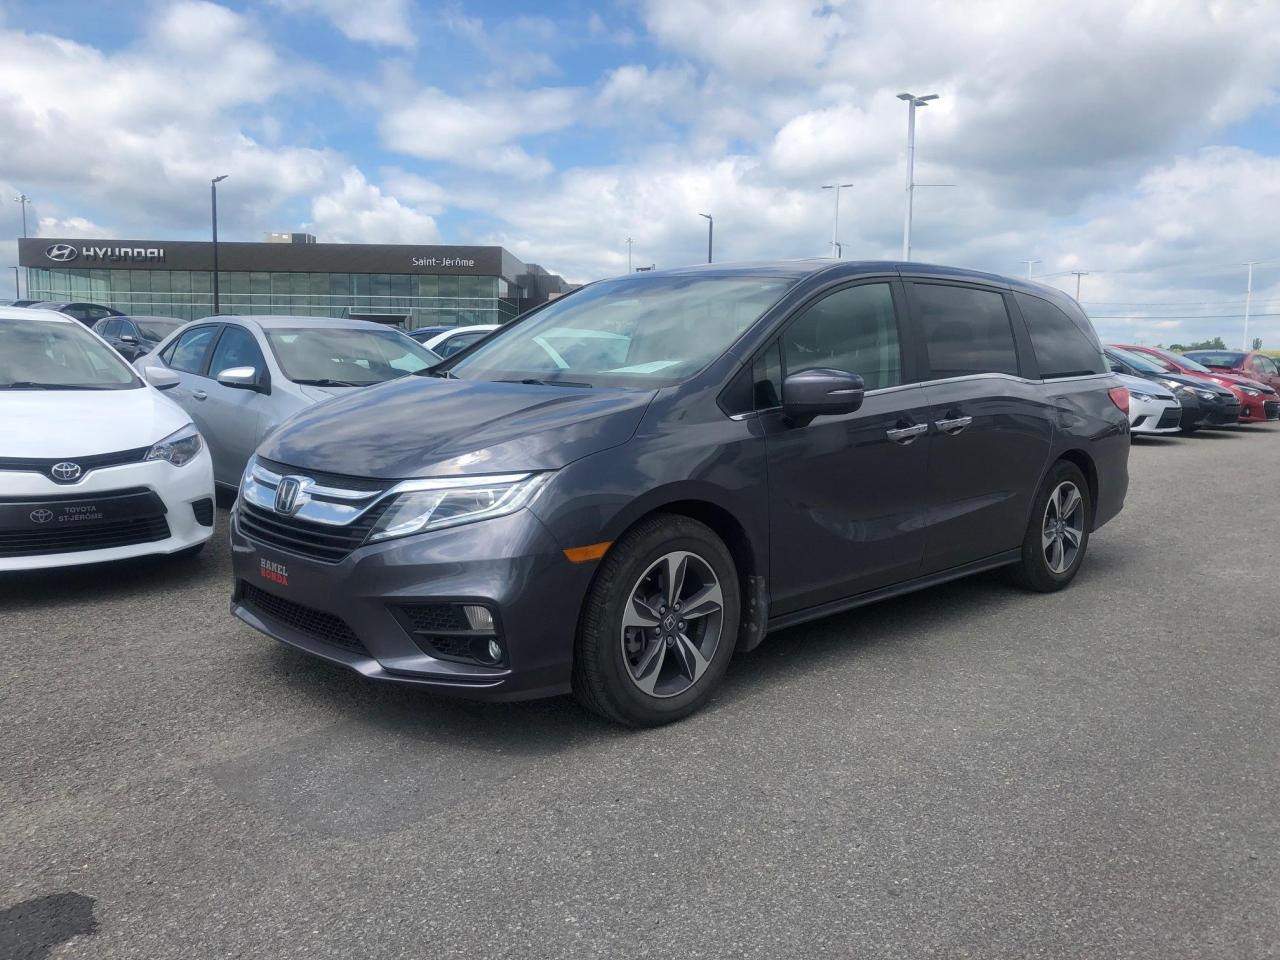 used 2019 honda odyssey ex auto for sale in mirabel, quebec carpages.ca